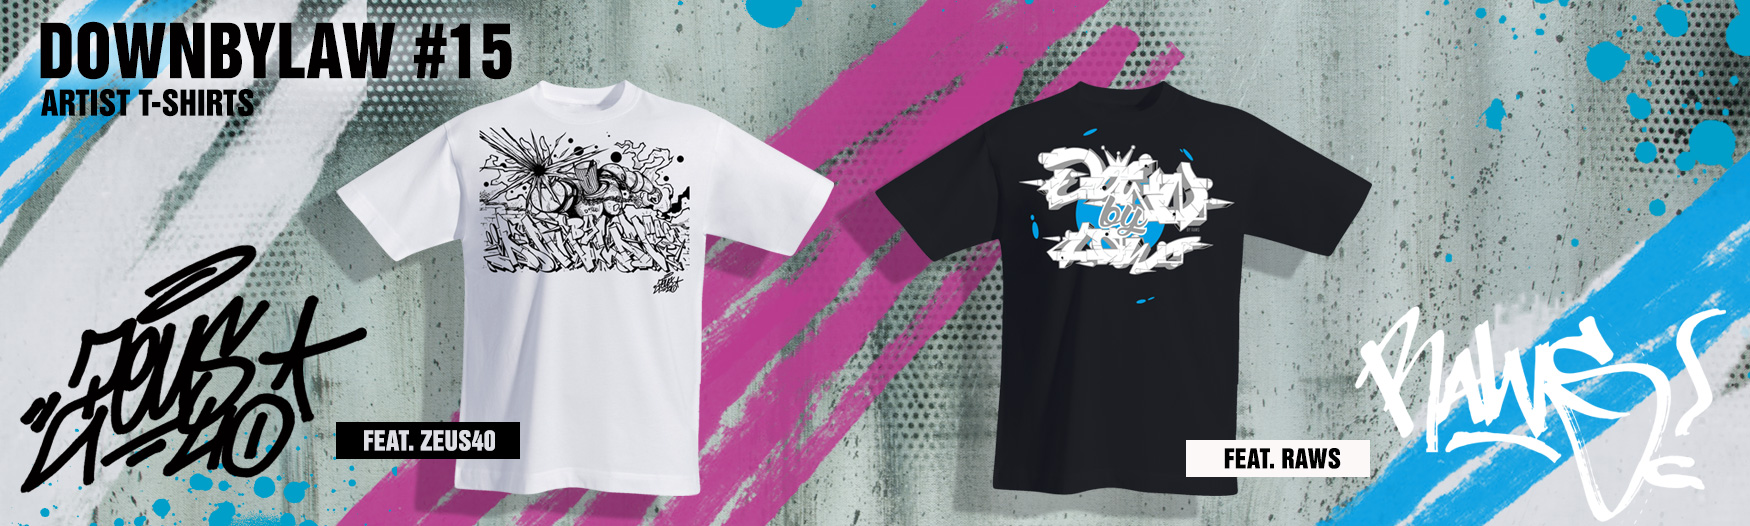 downbylaw_graffiti_header_tshirts01